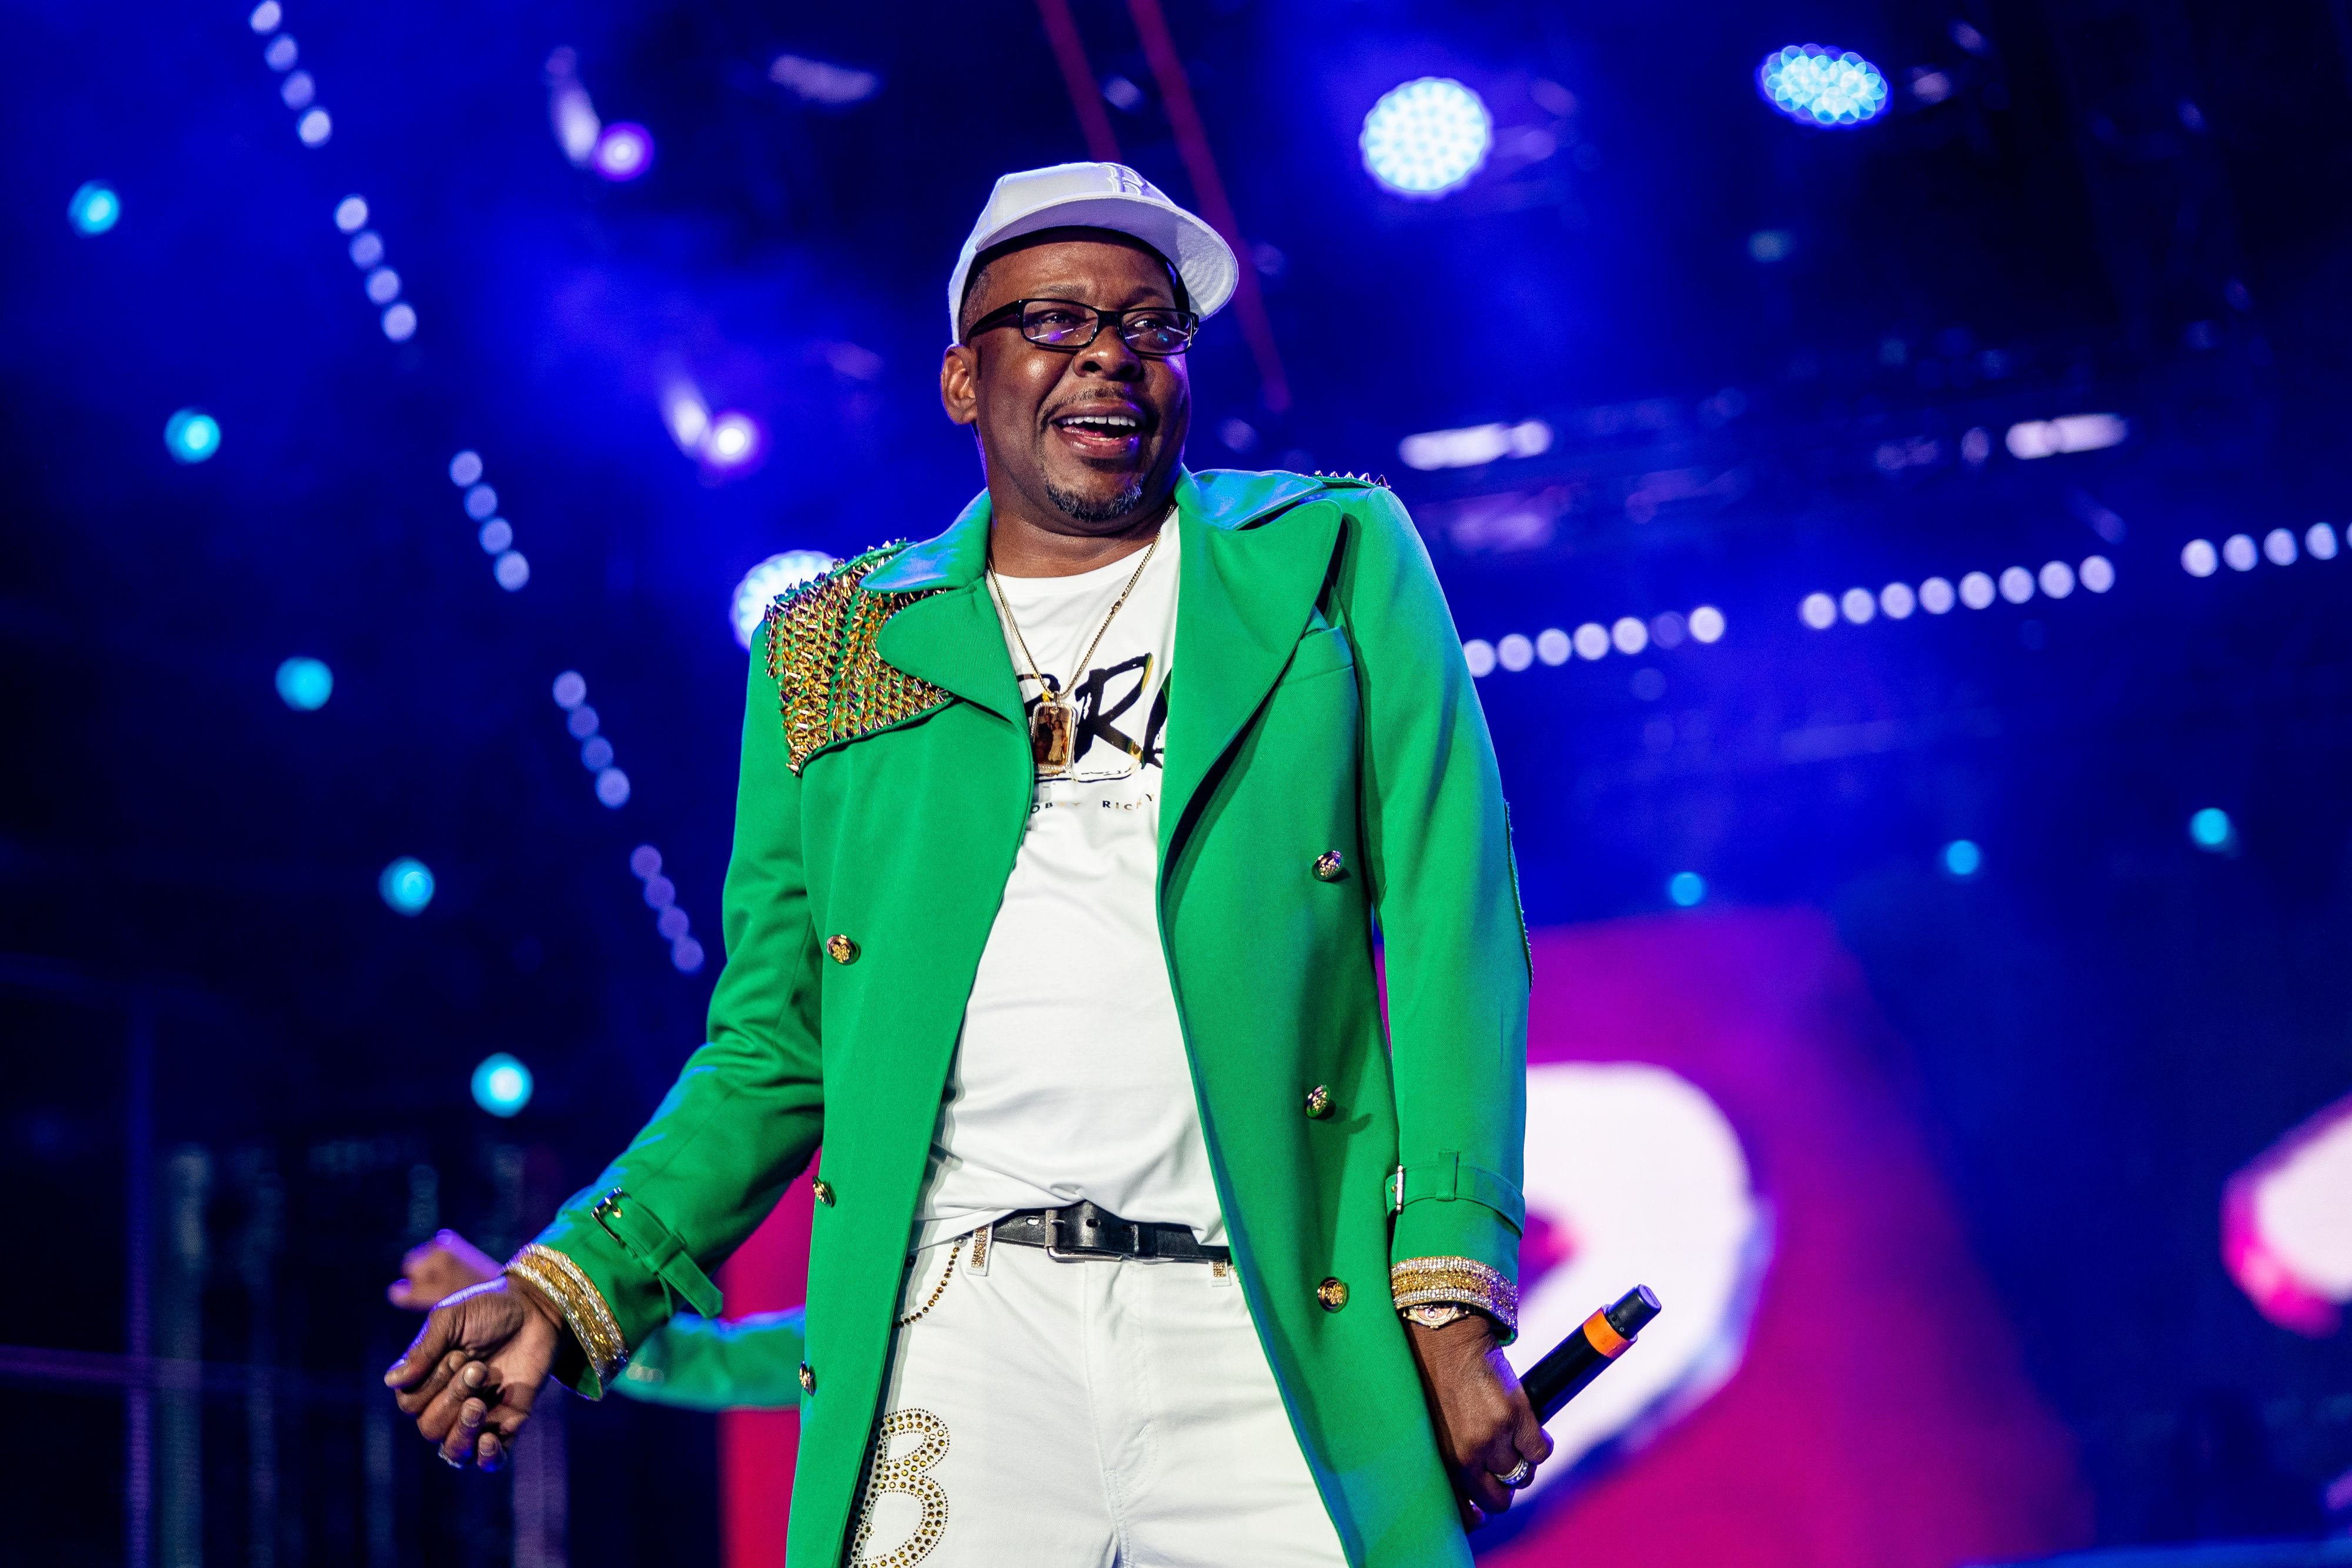 Bobby Brown performs during the 25th Essence Festival, in New Orleans, Louisiana on July 05, 2019.   Photo: Getty Images